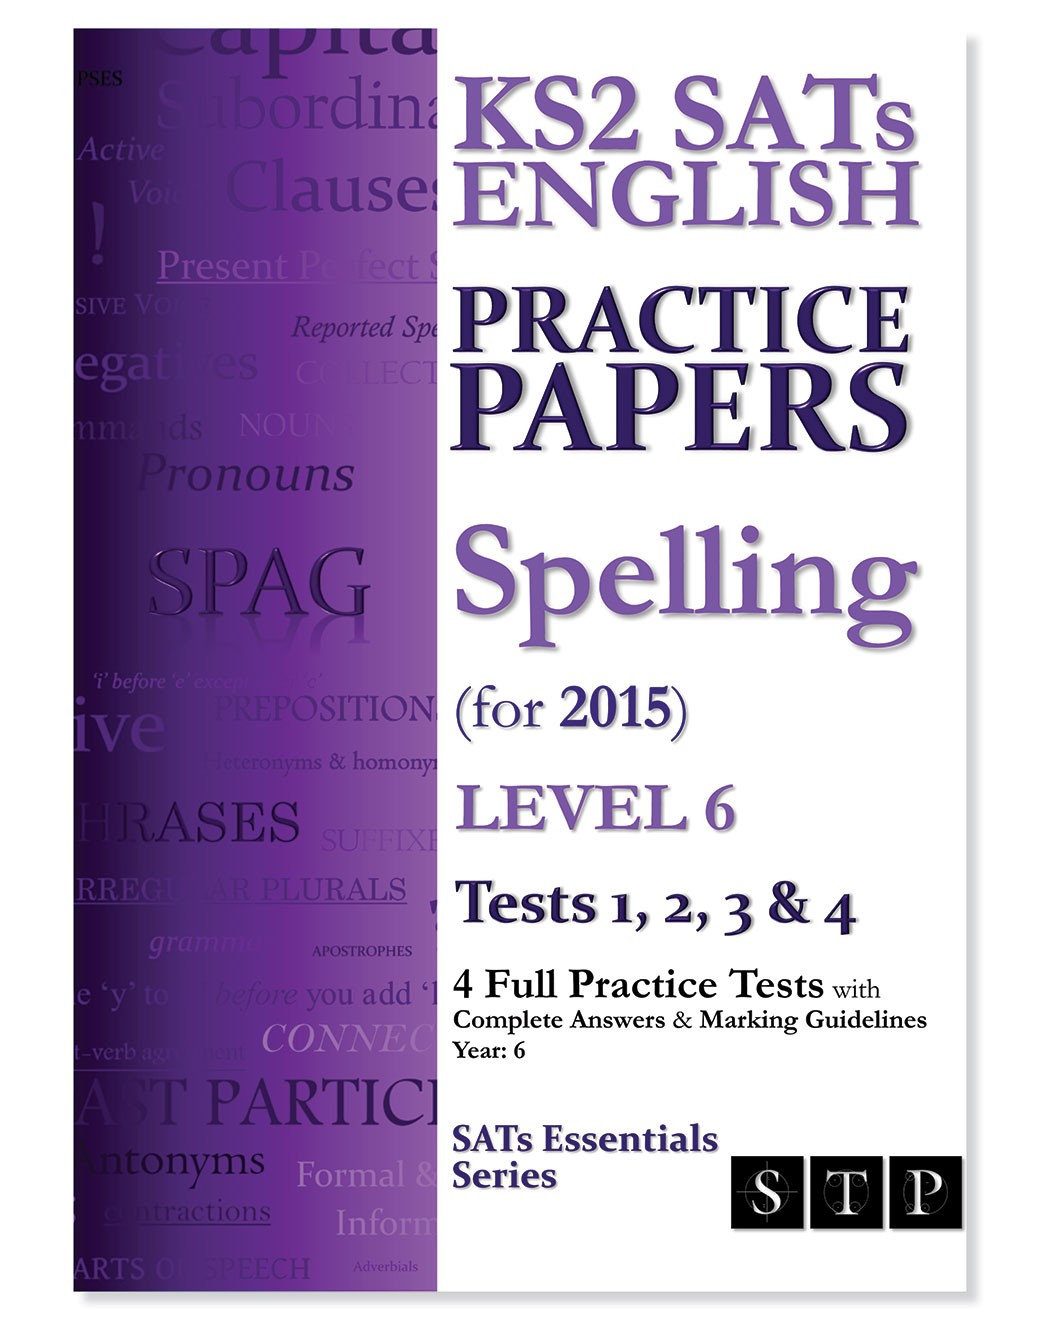 STP Books KS2 SATs English Practice Papers: Spelling (for 2015) Level 6: Tests 1, 2, 3 & 4 (Year 6)